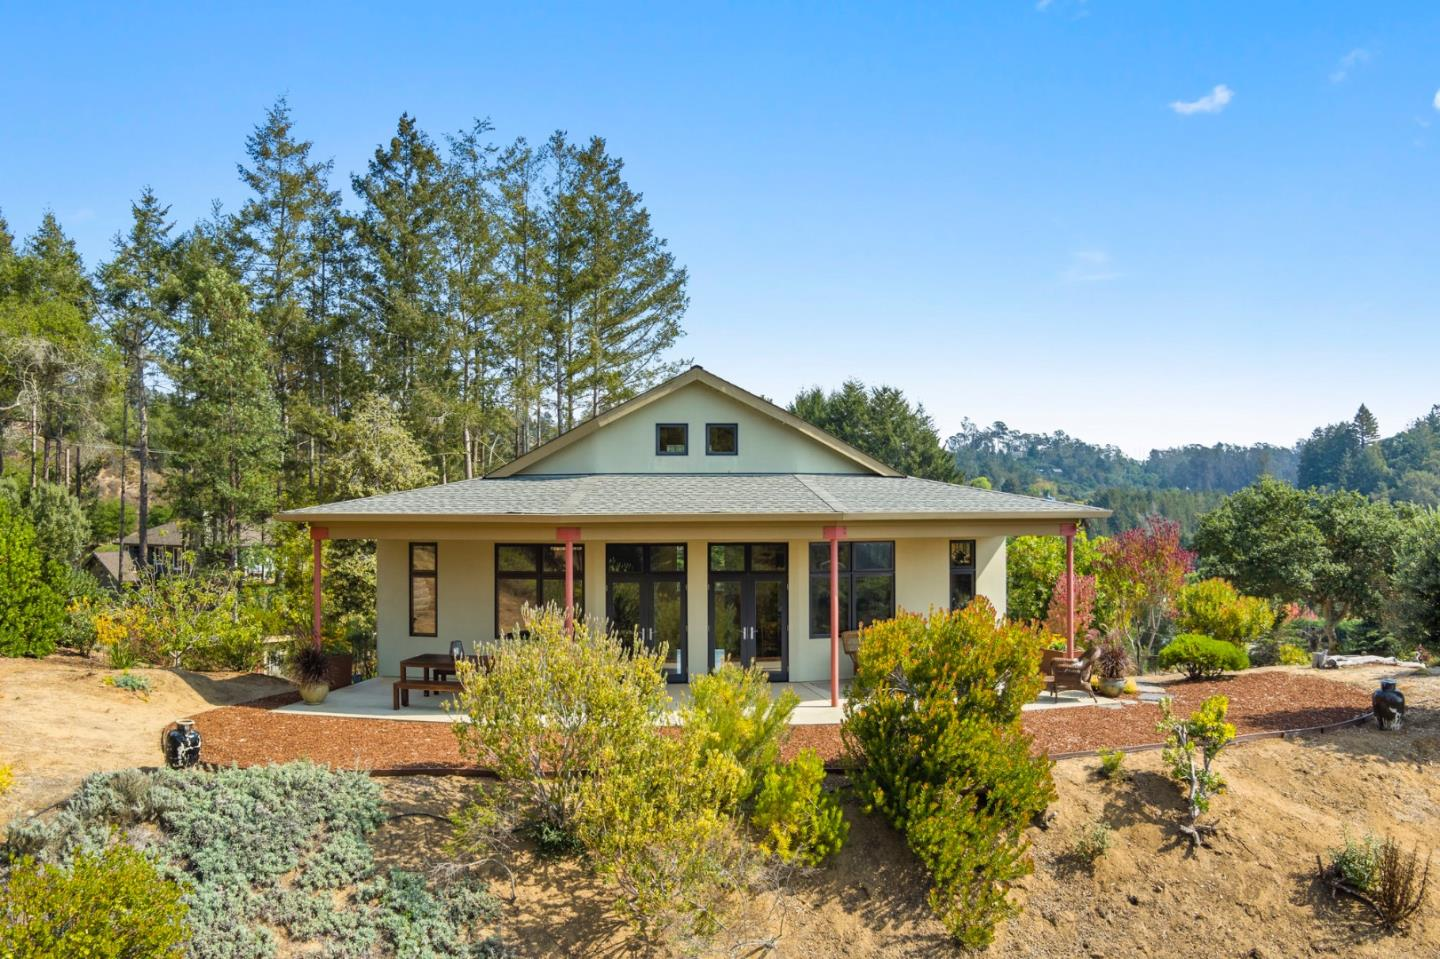 Remodeled 3-Bedroom House In The Forest